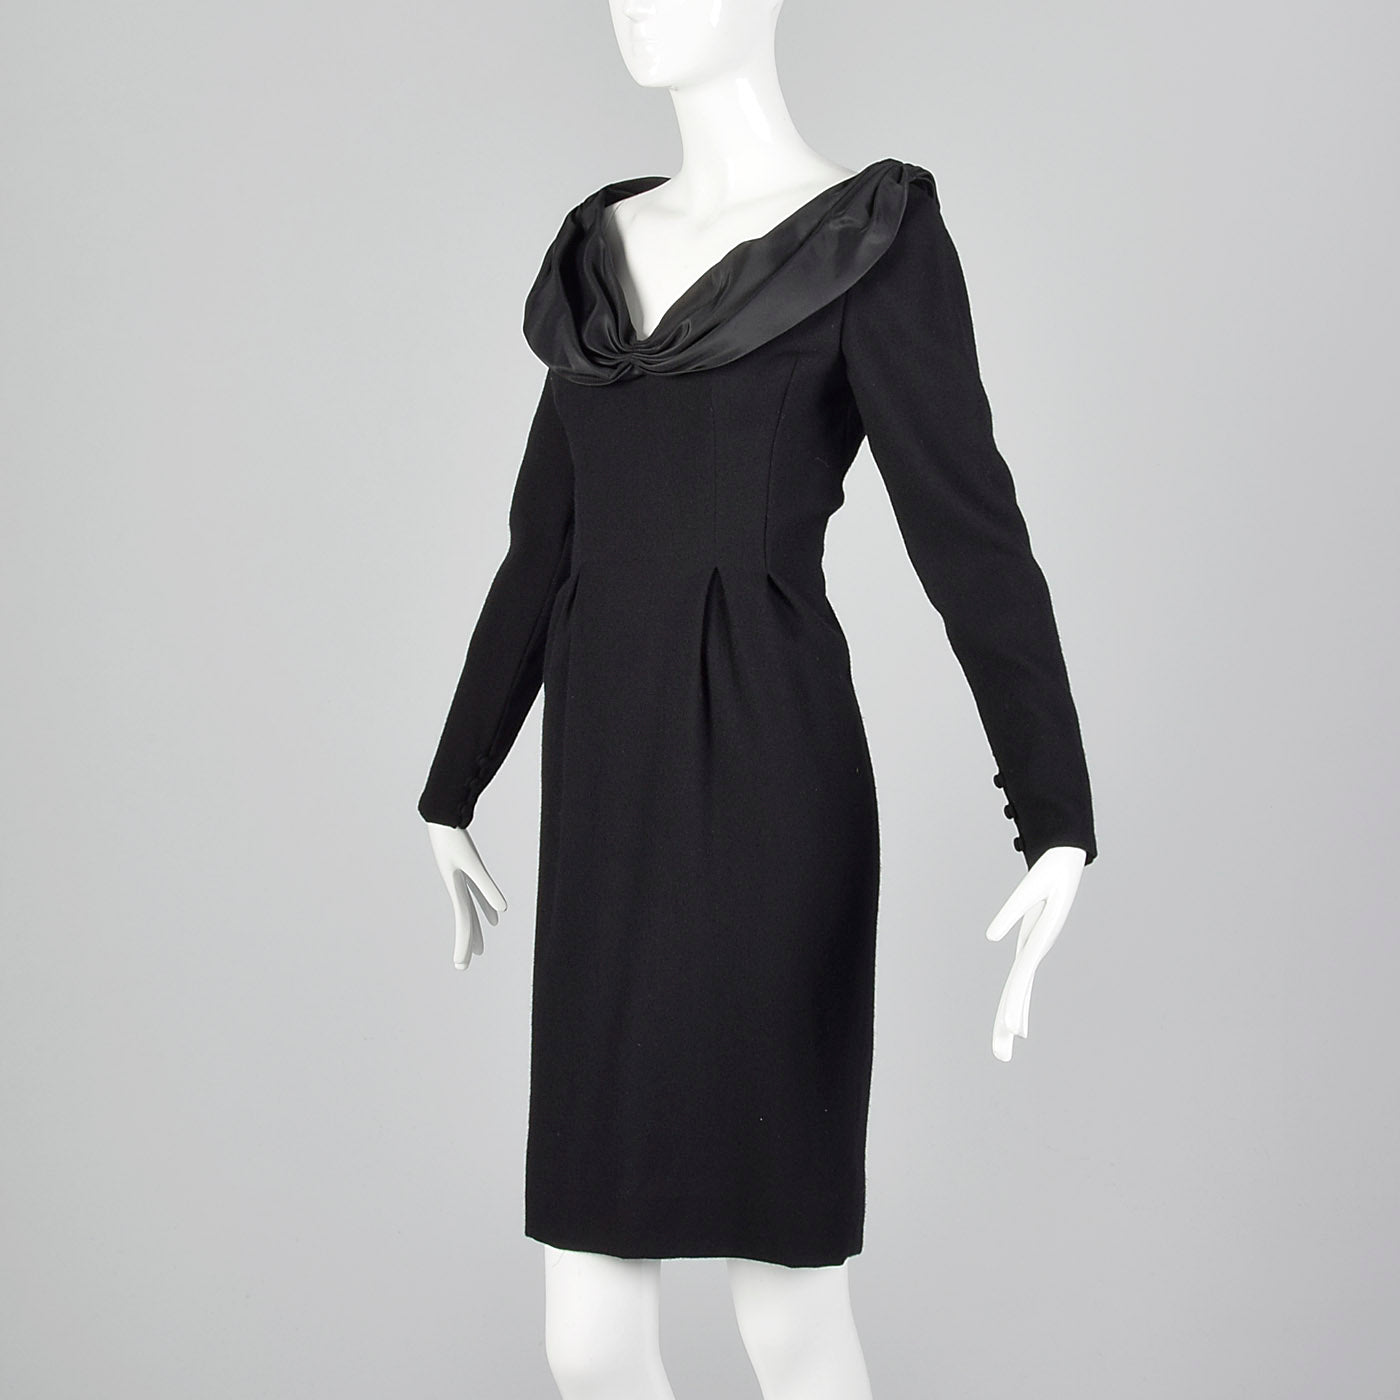 1980s Bill Blass Black Wool Pencil Dress